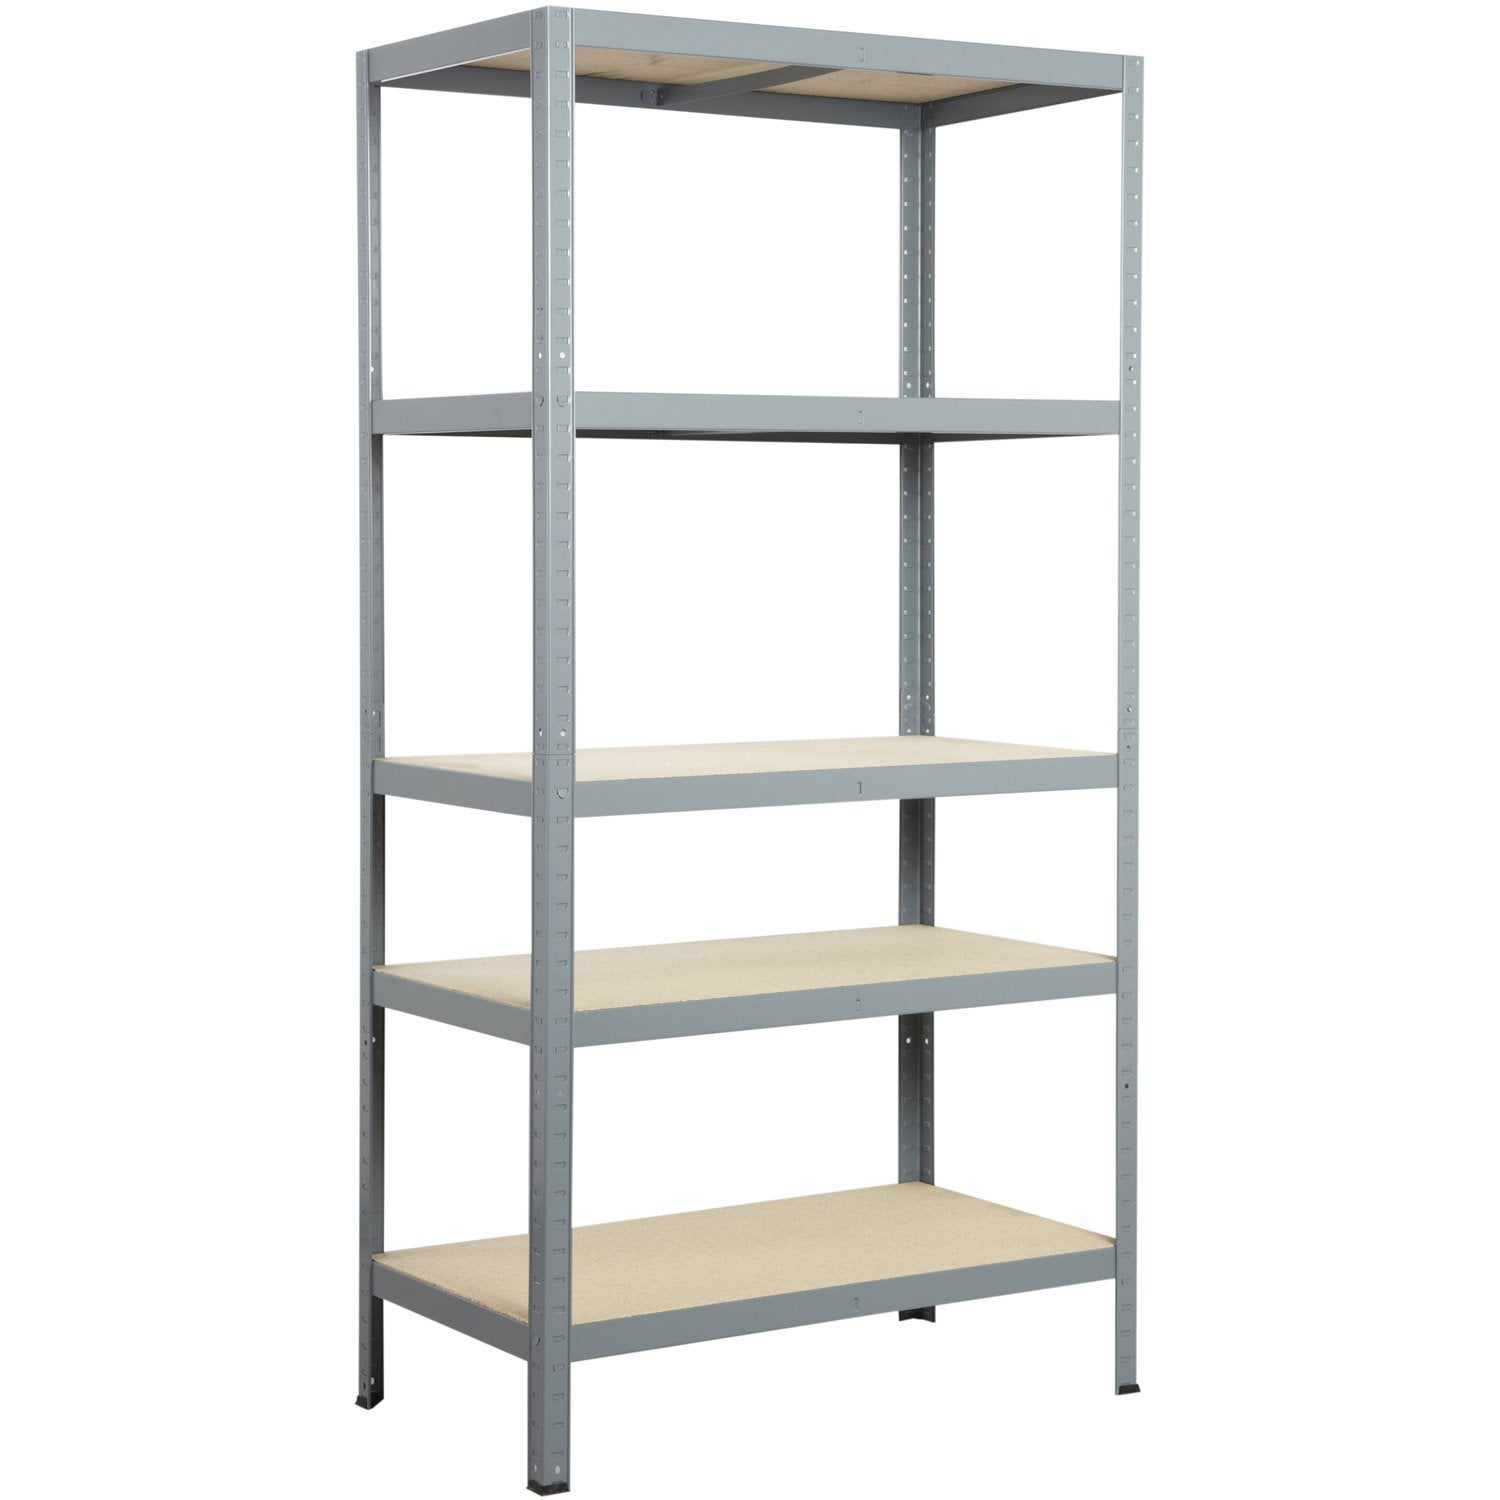 Etag re en acier epoxy gris 5 tablettes avasco strong - Etagere metal leroy merlin ...